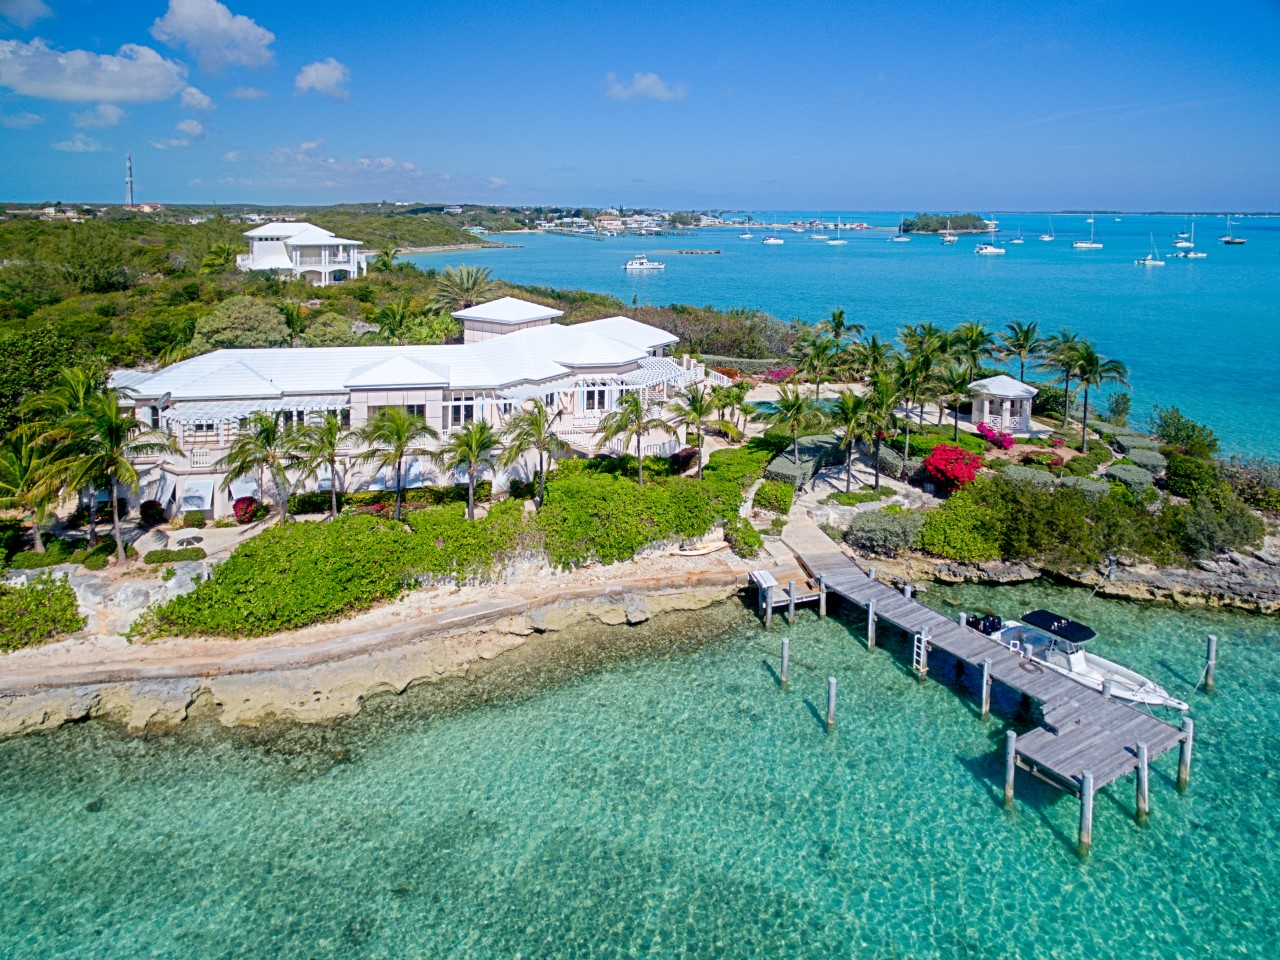 Buy an Investment property in The Bahamas.